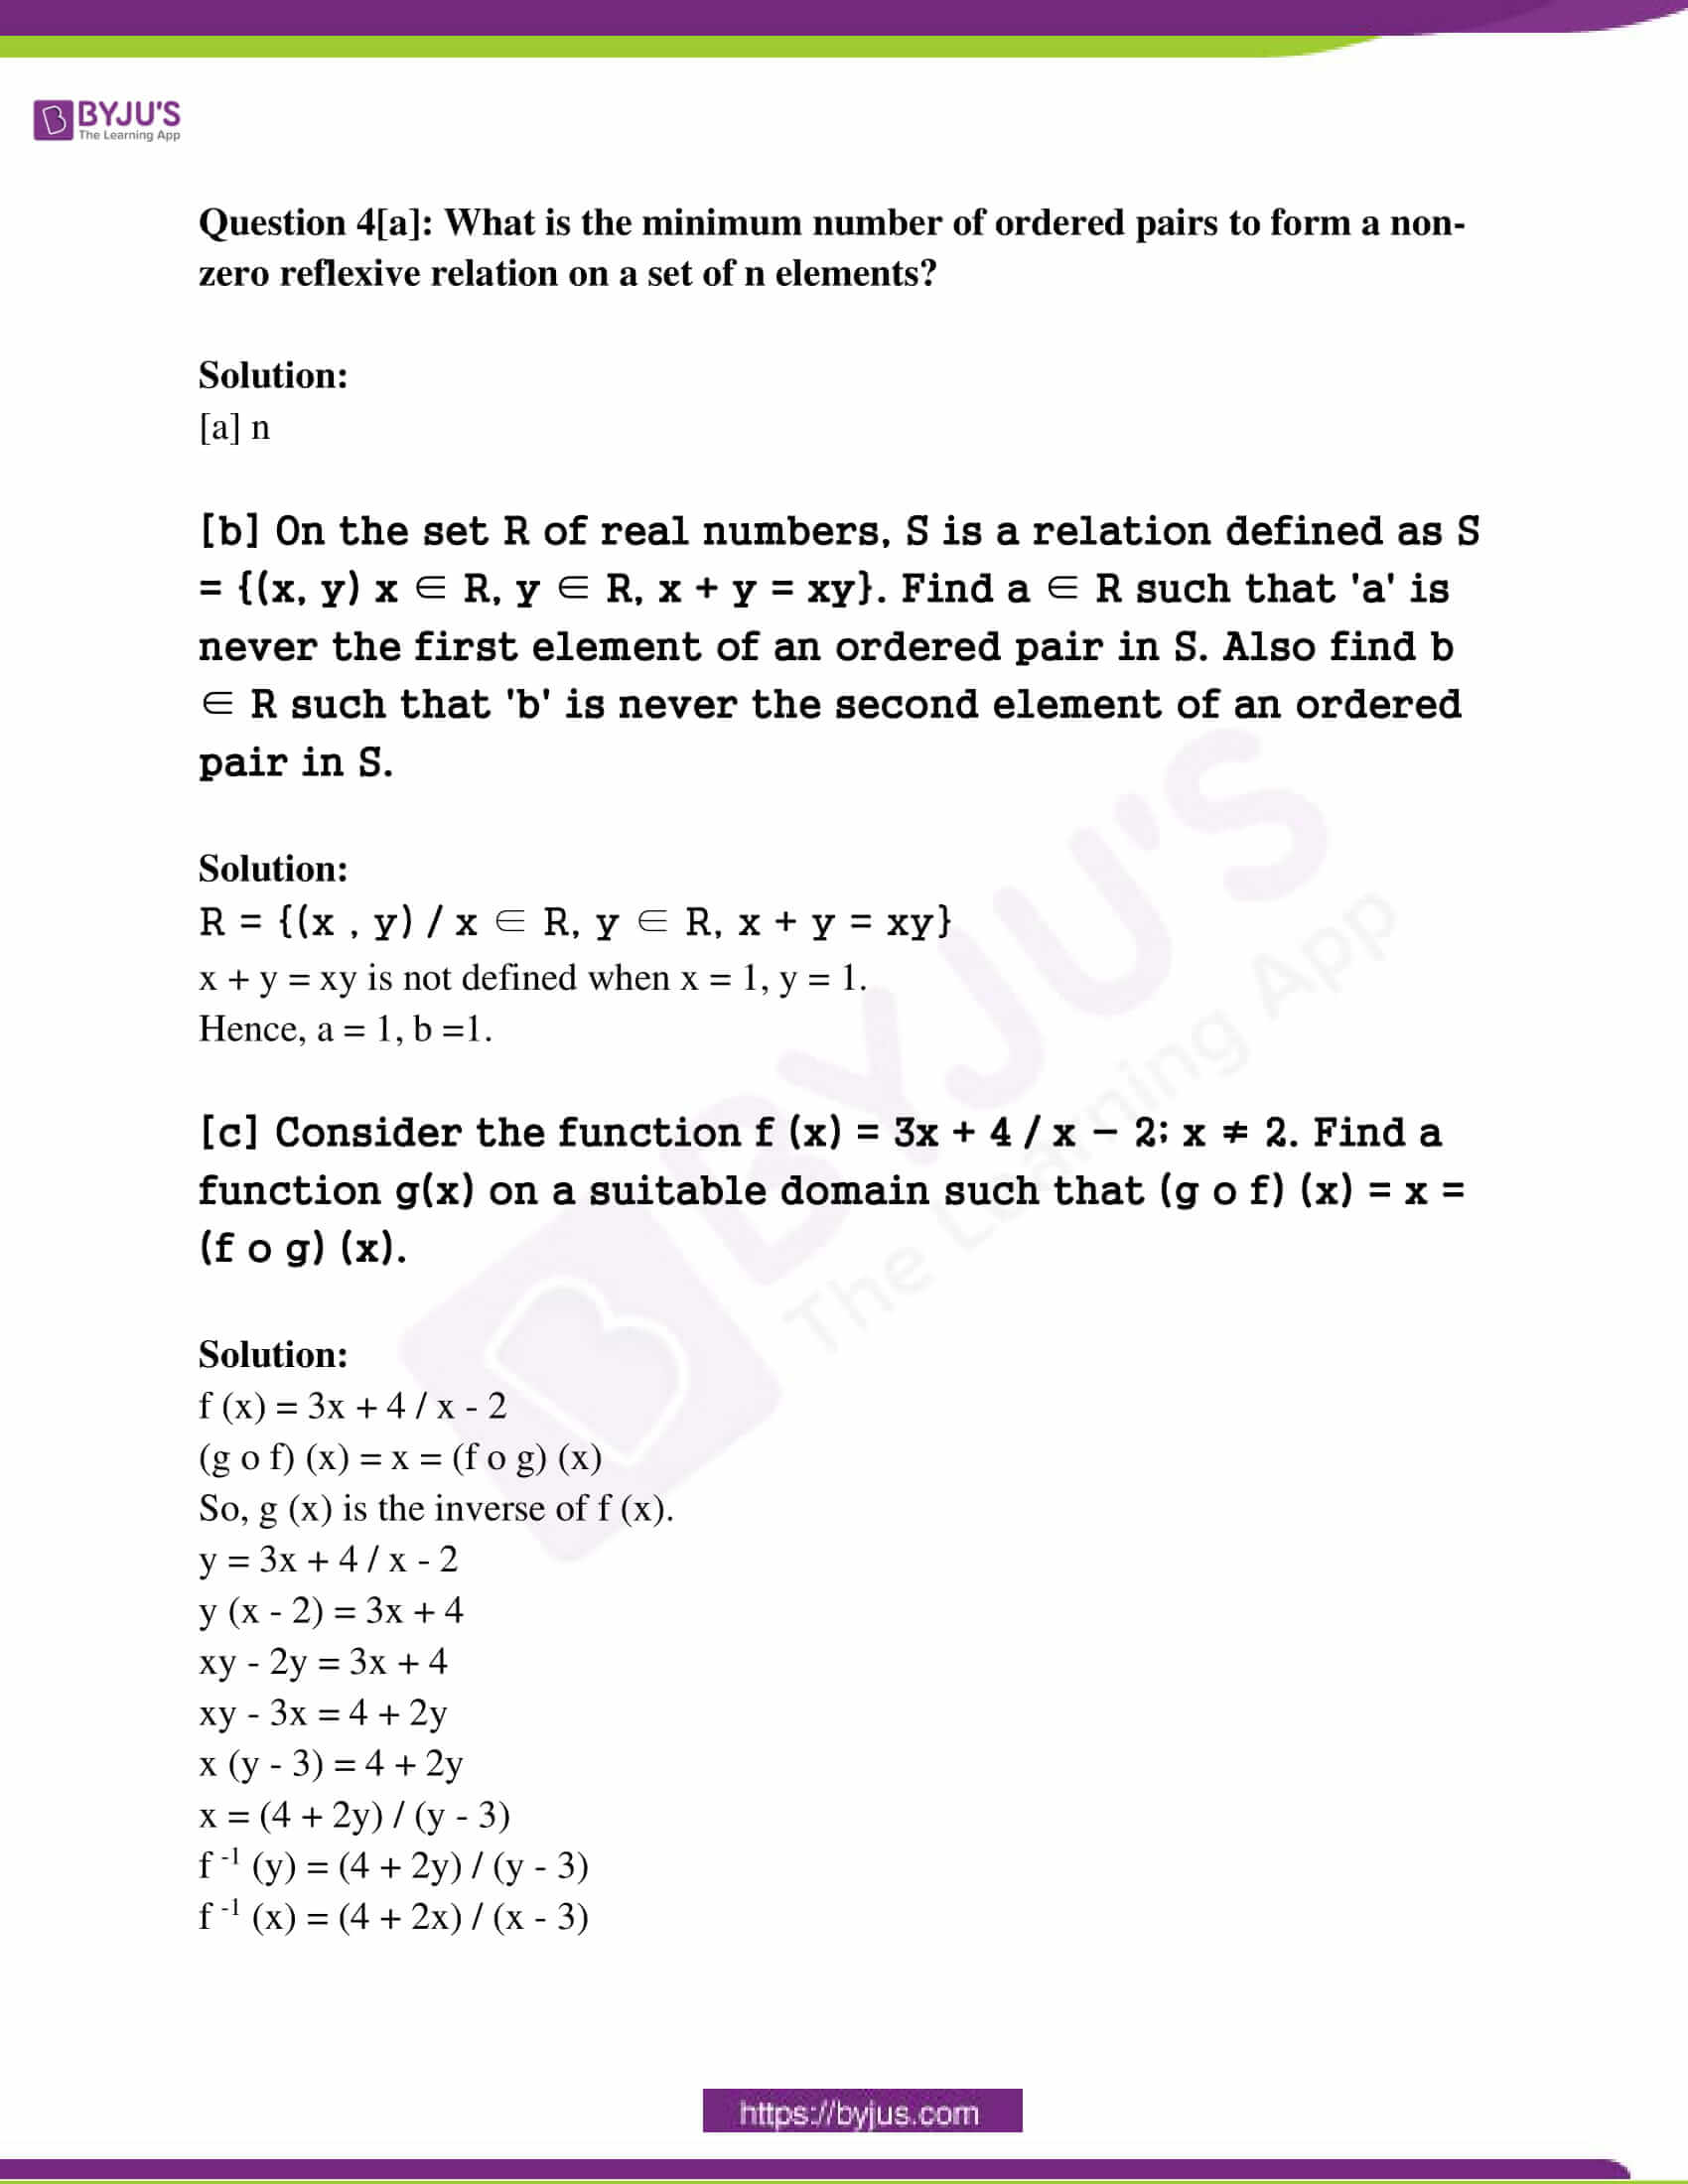 kerala class 12 examination question paper solutions march 2015 06